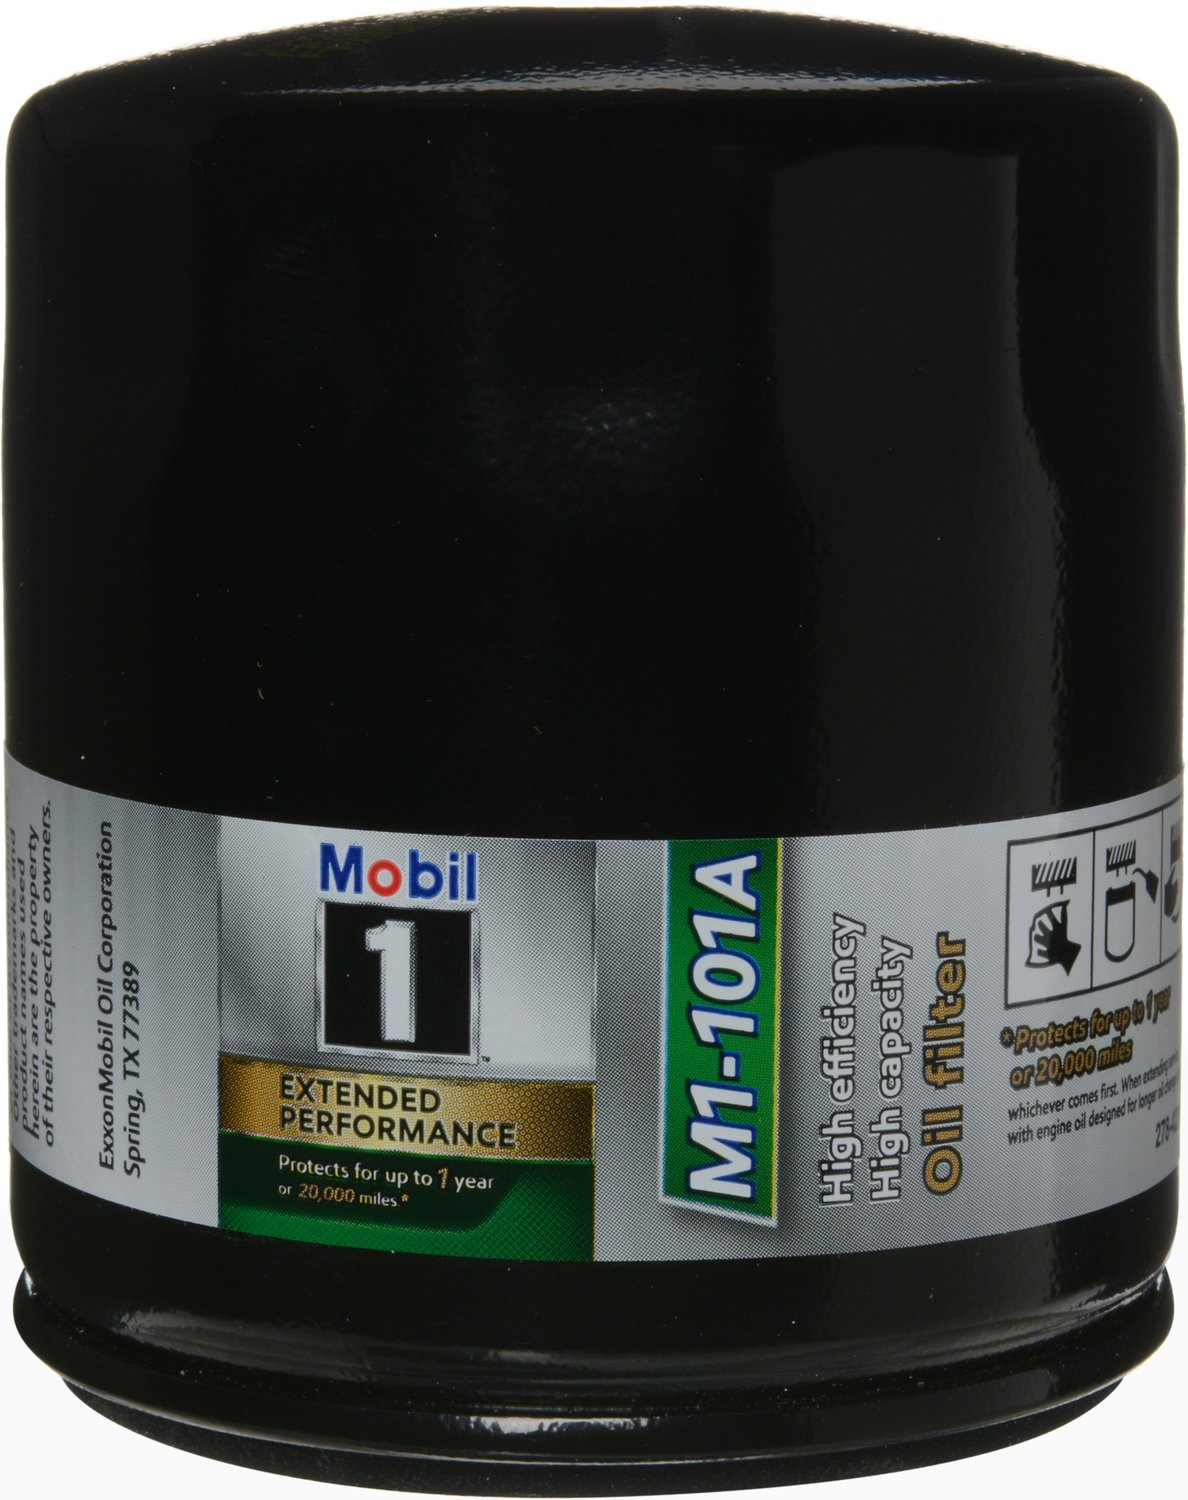 Mobil 1 M1-101A Extended Performance Oil Filter, Pack of 2